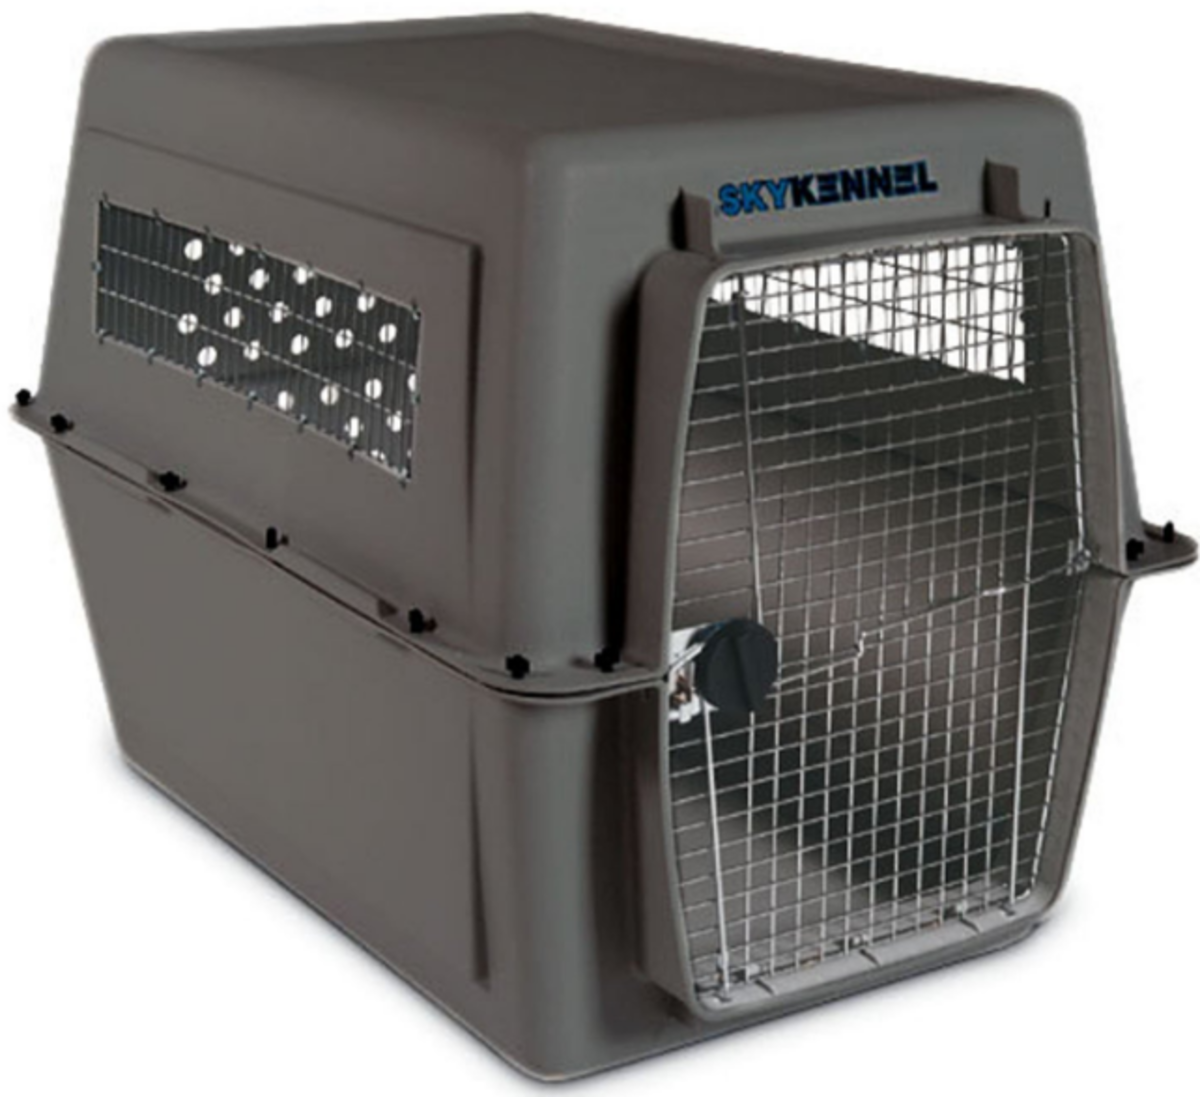 The Petmate Sky Kennel is an airline-approved carrier that comes in sizes large enough to hold large and giant breed dogs.